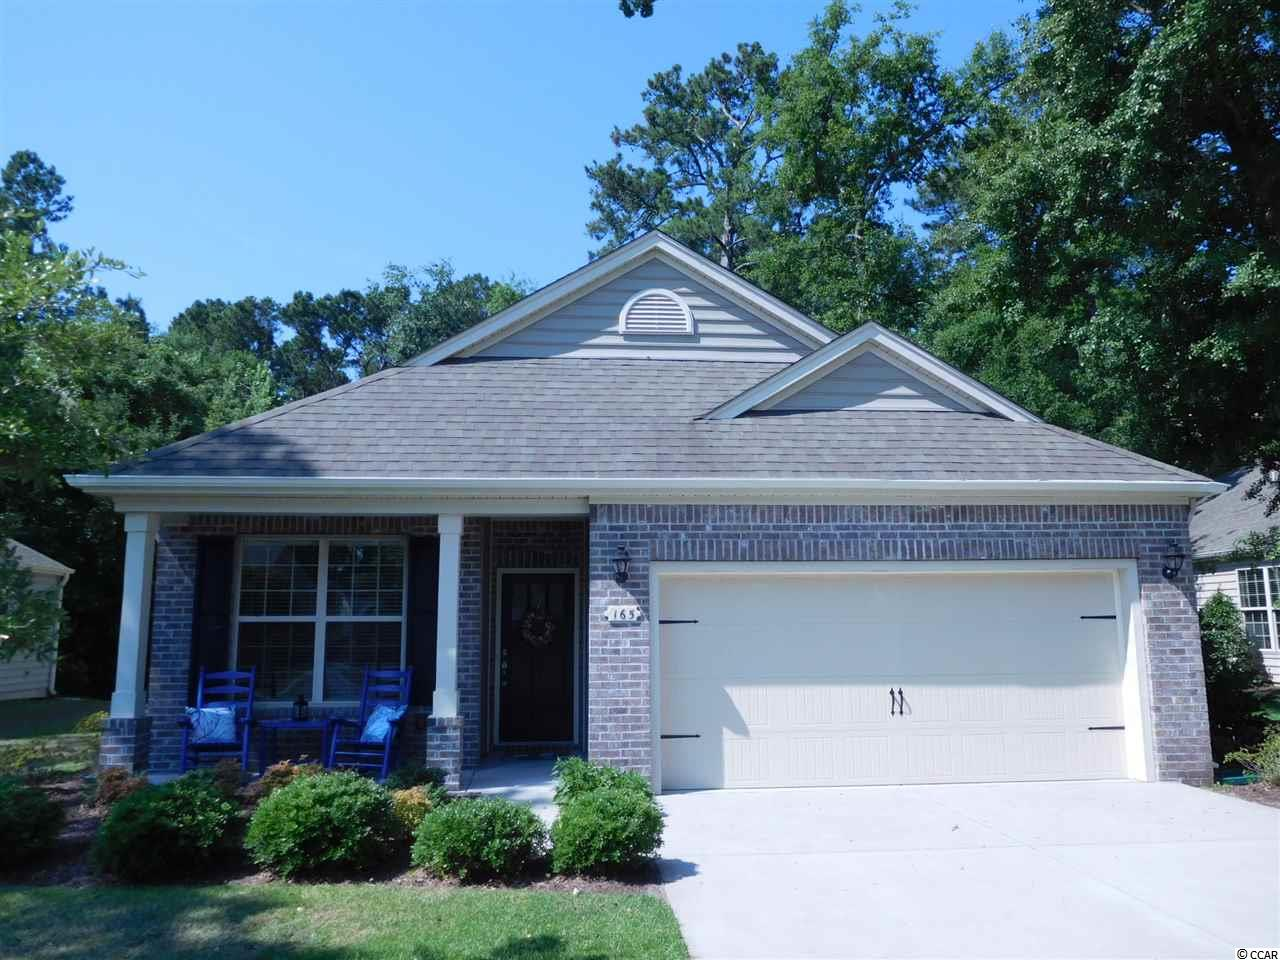 Meticulously maintained 2nd home with outstanding floorplan. Single level home with open floor plan in a wonderful neighborhood. Only one owner who had many options added to home during construction. Some of the extras are the wood floors, stainless steel appliances, deep single stainless steel kitchen sink, large master bedroom walk-in closet, master bath with separate shower and garden tub, beautiful gas fireplace, carpet in bedrooms, tile in bathrooms, ceiling fans in every bedroom. Whole house surge protector and propane hookup on patio for gas grill. Pantry, coat, and linen closets. 2-car garage. Flex room that can be used as a study, library, playroom, etc. This property backs up to a protected wooded buffer and is located adjacent to walking trails and fitness center. Beach is only 1/2 mile away! Square footage is approximate and not guaranteed.  Buyer is responsible for verification.